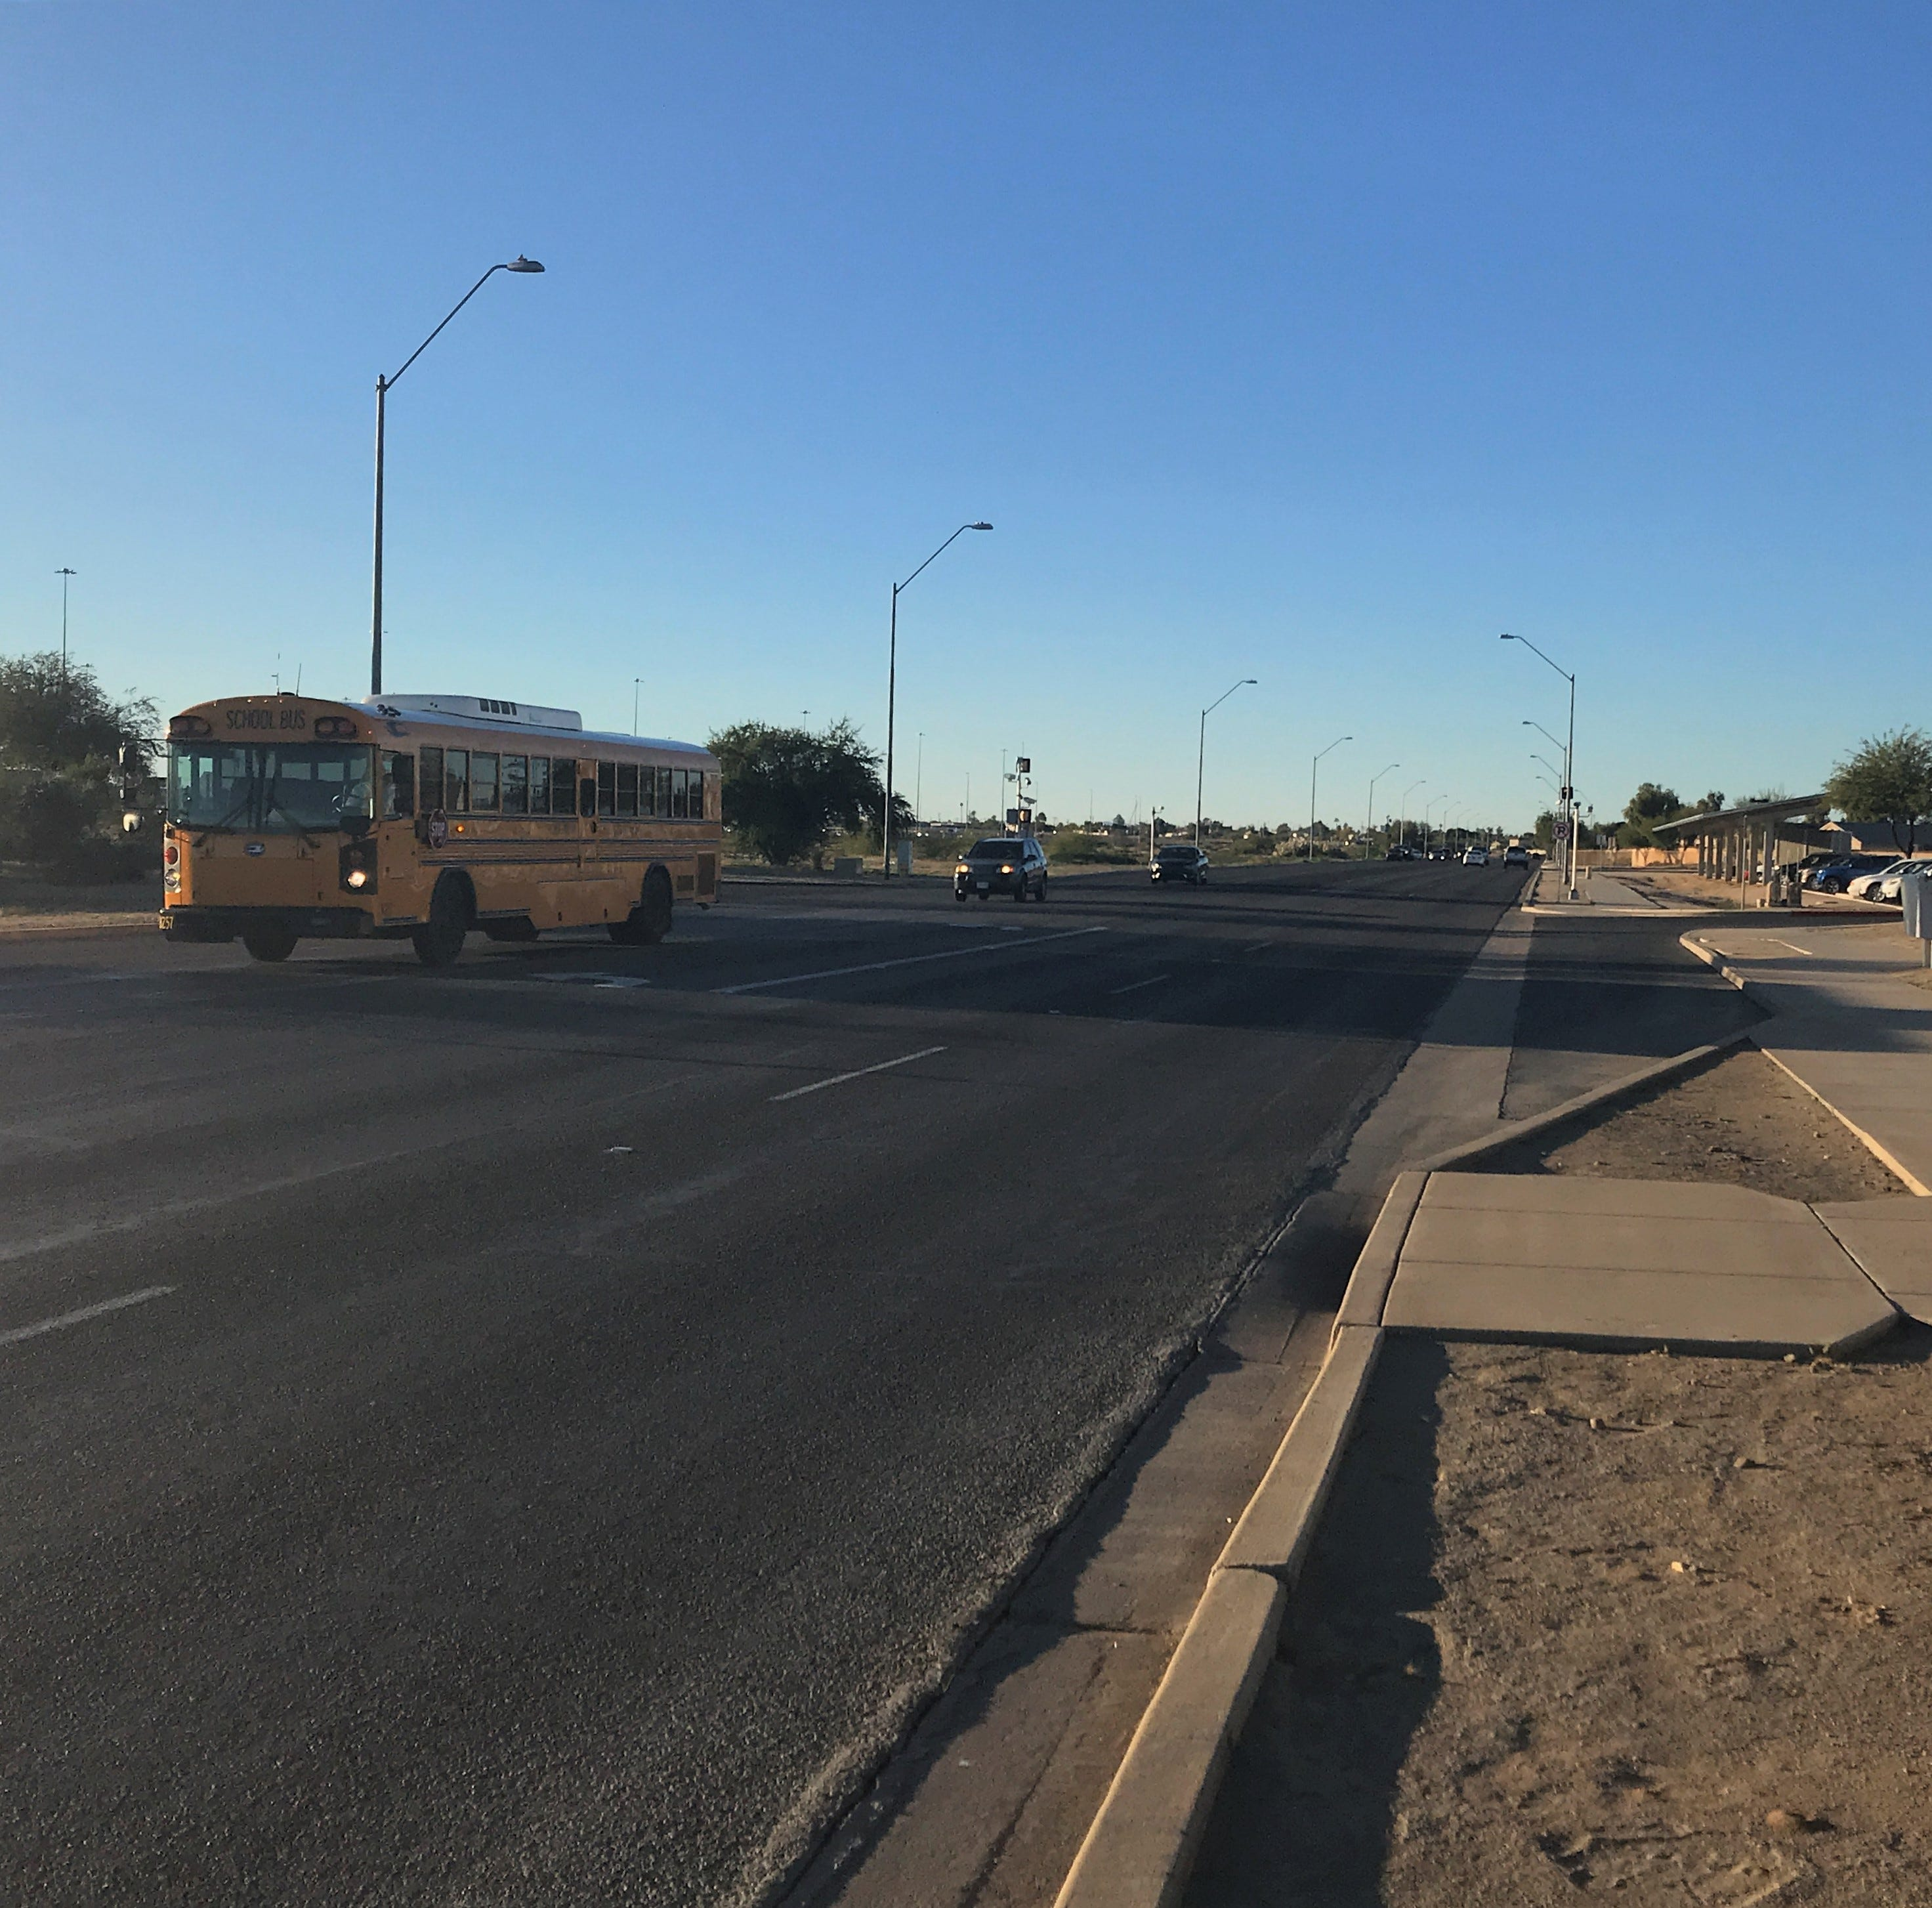 After setting up illegal speed trap, this Arizona city is repaying drivers nearly $100K